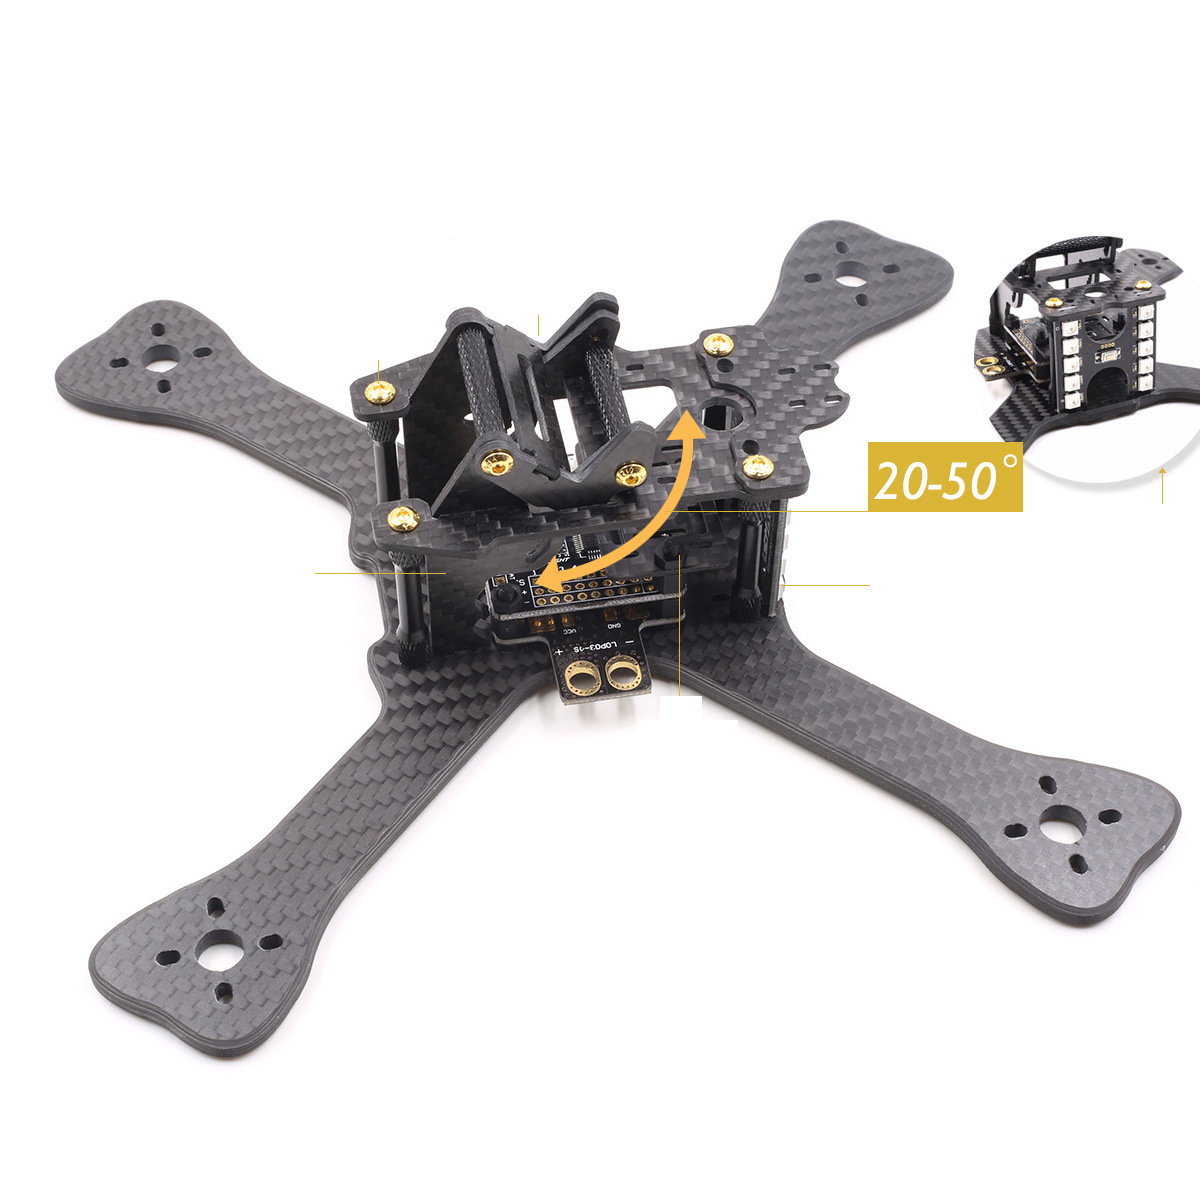 GEPRC GEP-TX5 chimp Mini Racing Through Quadcopter Frame with Carbon Fiber 4mm Plate/PCB/BEC XT60 4-axis Aircraft 250 mini 250 carbon fiber aircraft frame rtf kit with radiolink t6ehp e tx